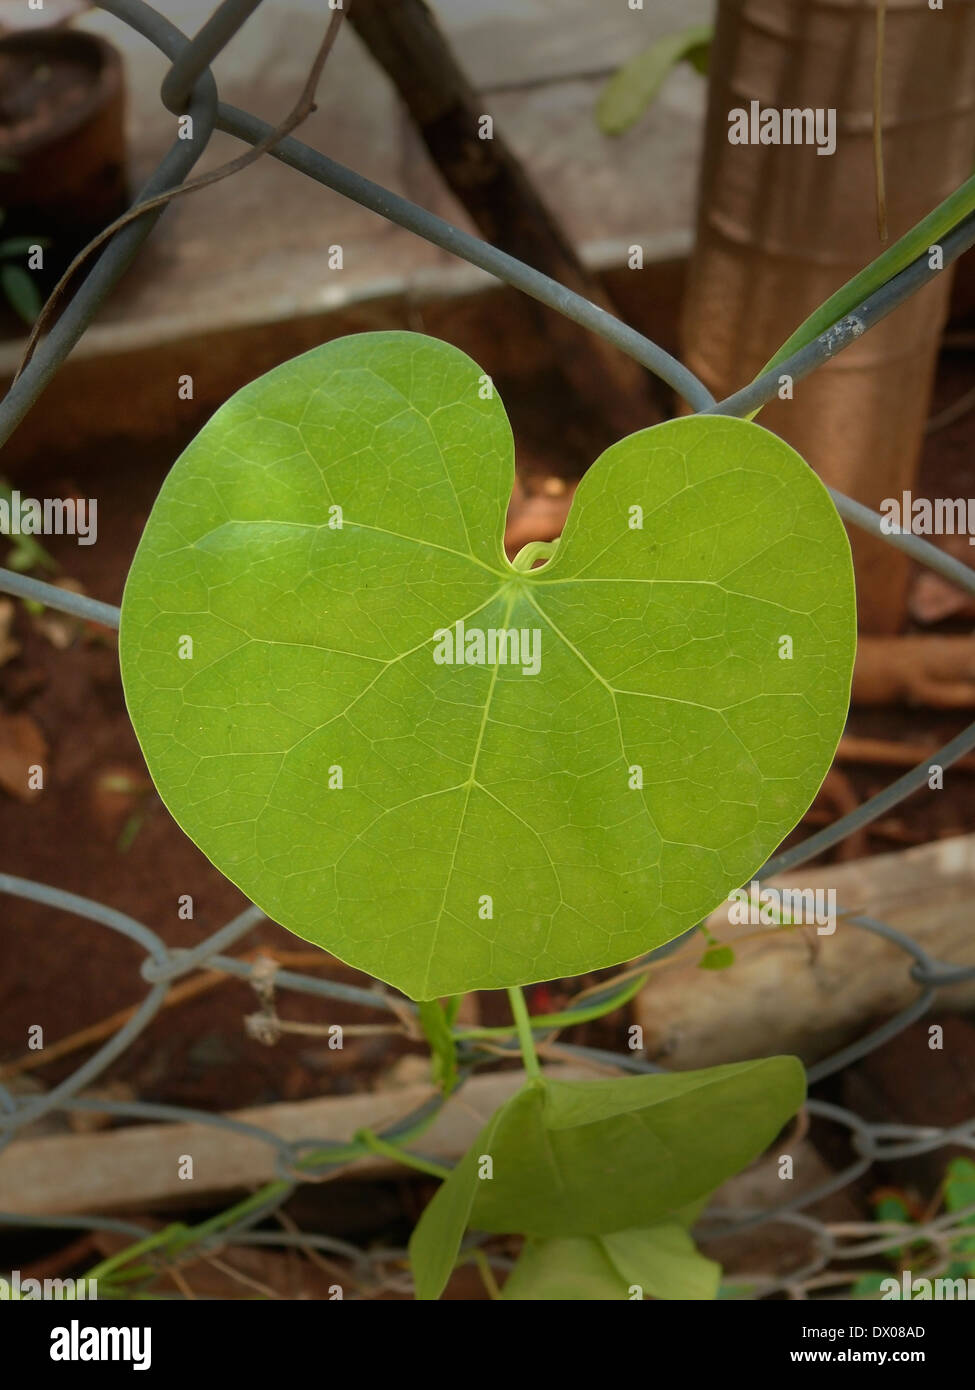 Fence Morning Glory Stockfotos & Fence Morning Glory Bilder - Alamy